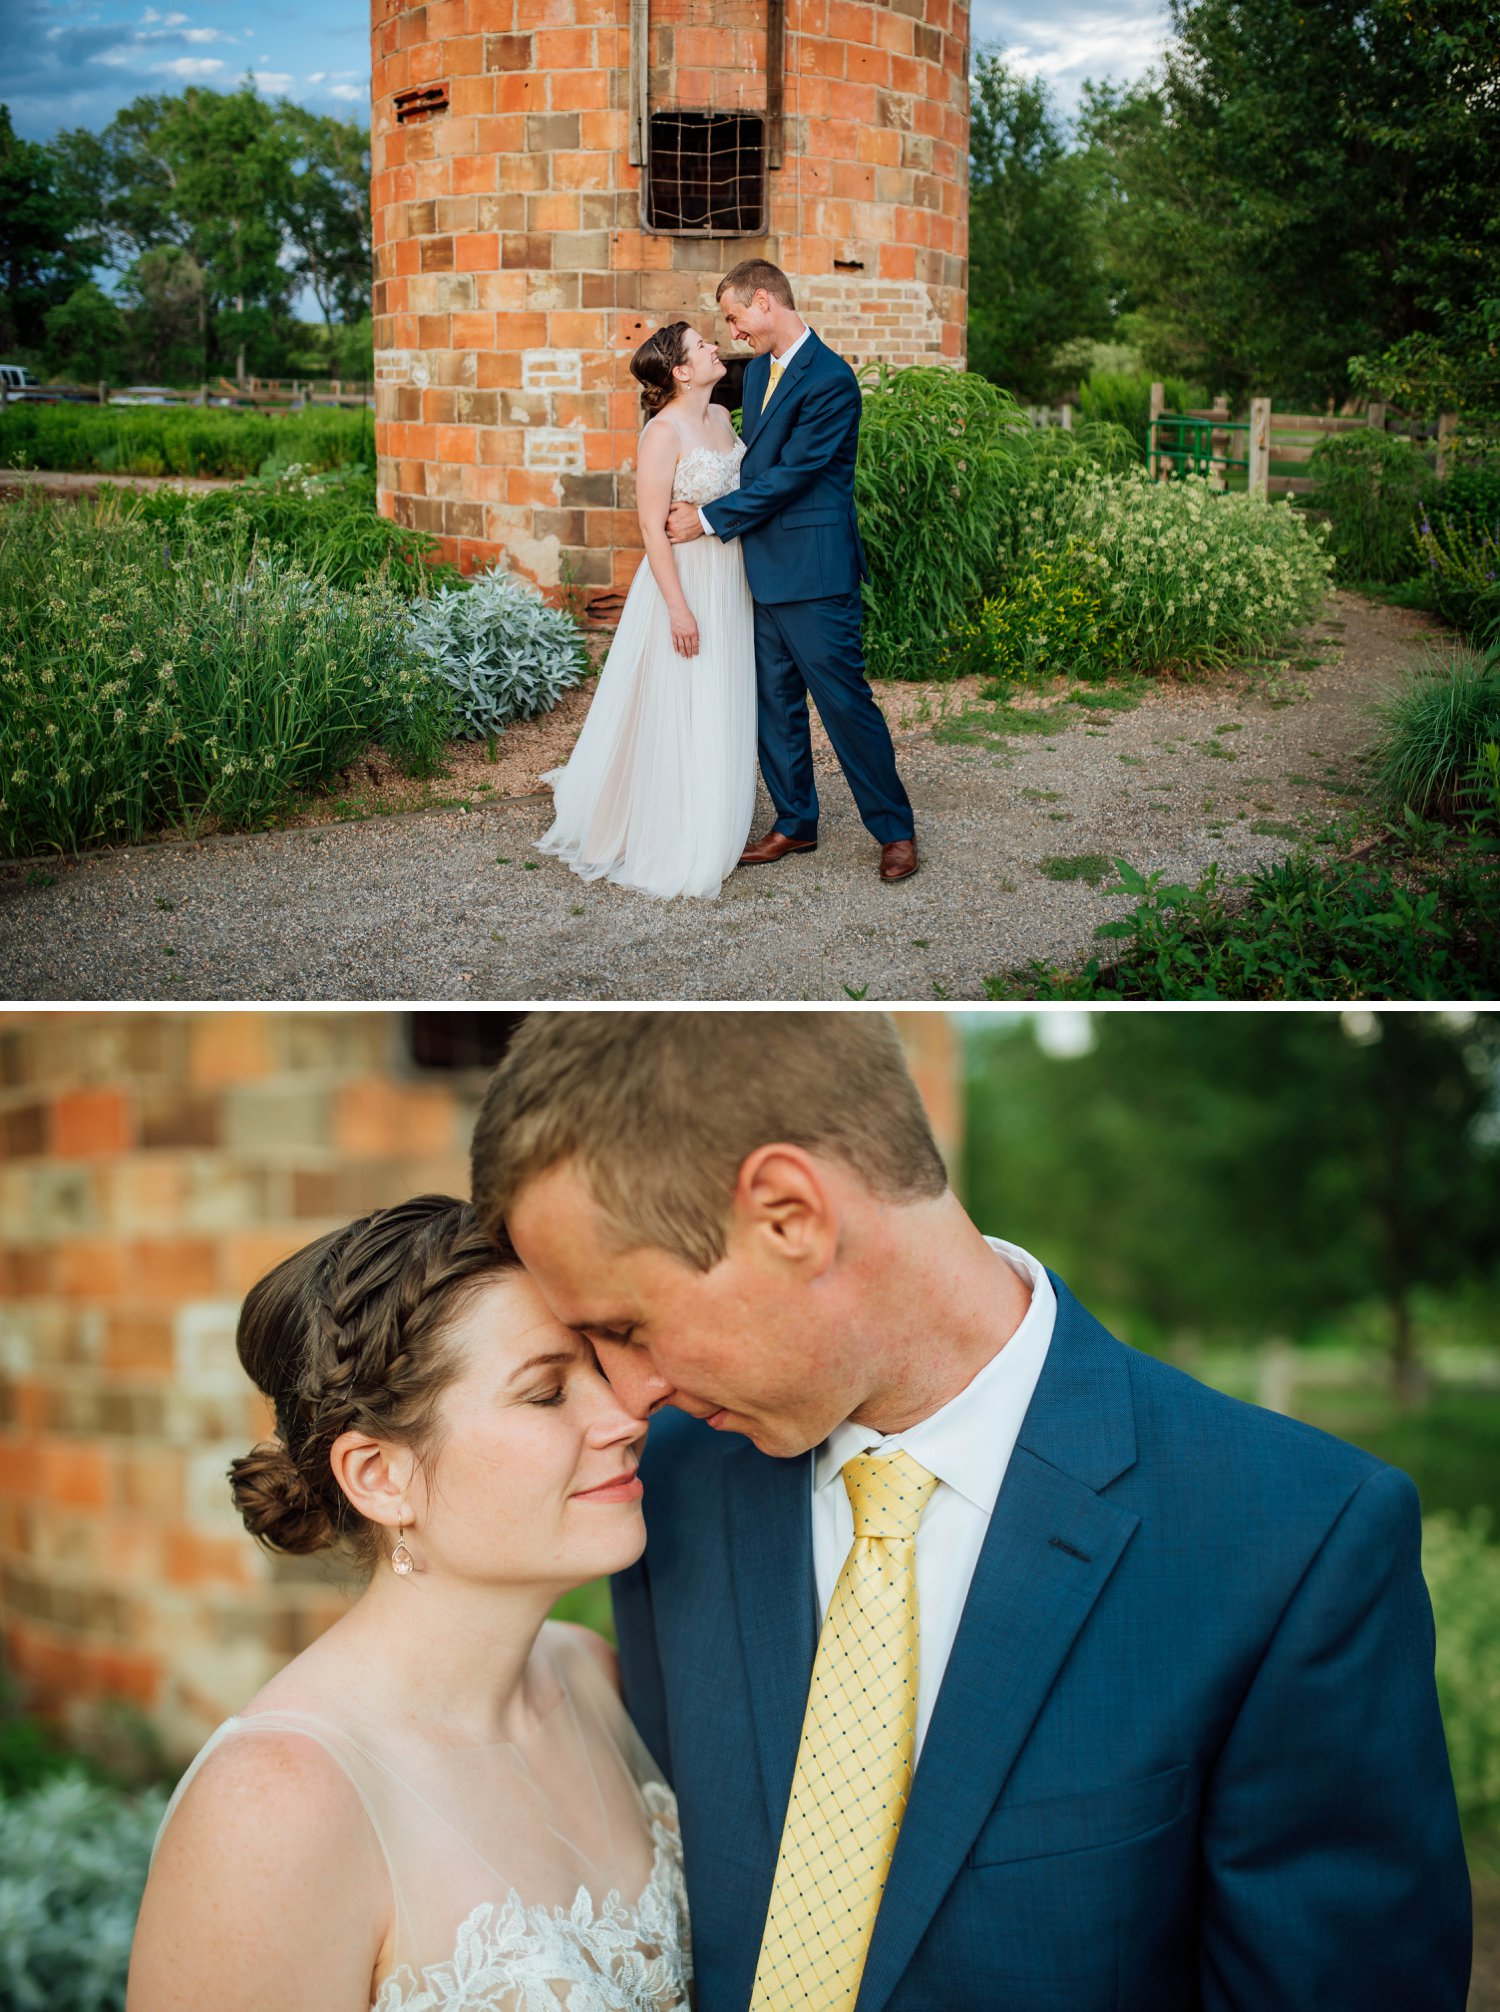 These photos are so sweet with the bride and the groom standing in front of the brick tower at the Denver Botanic Gardens in Chatfield.Photo by Maddie Mae Photography